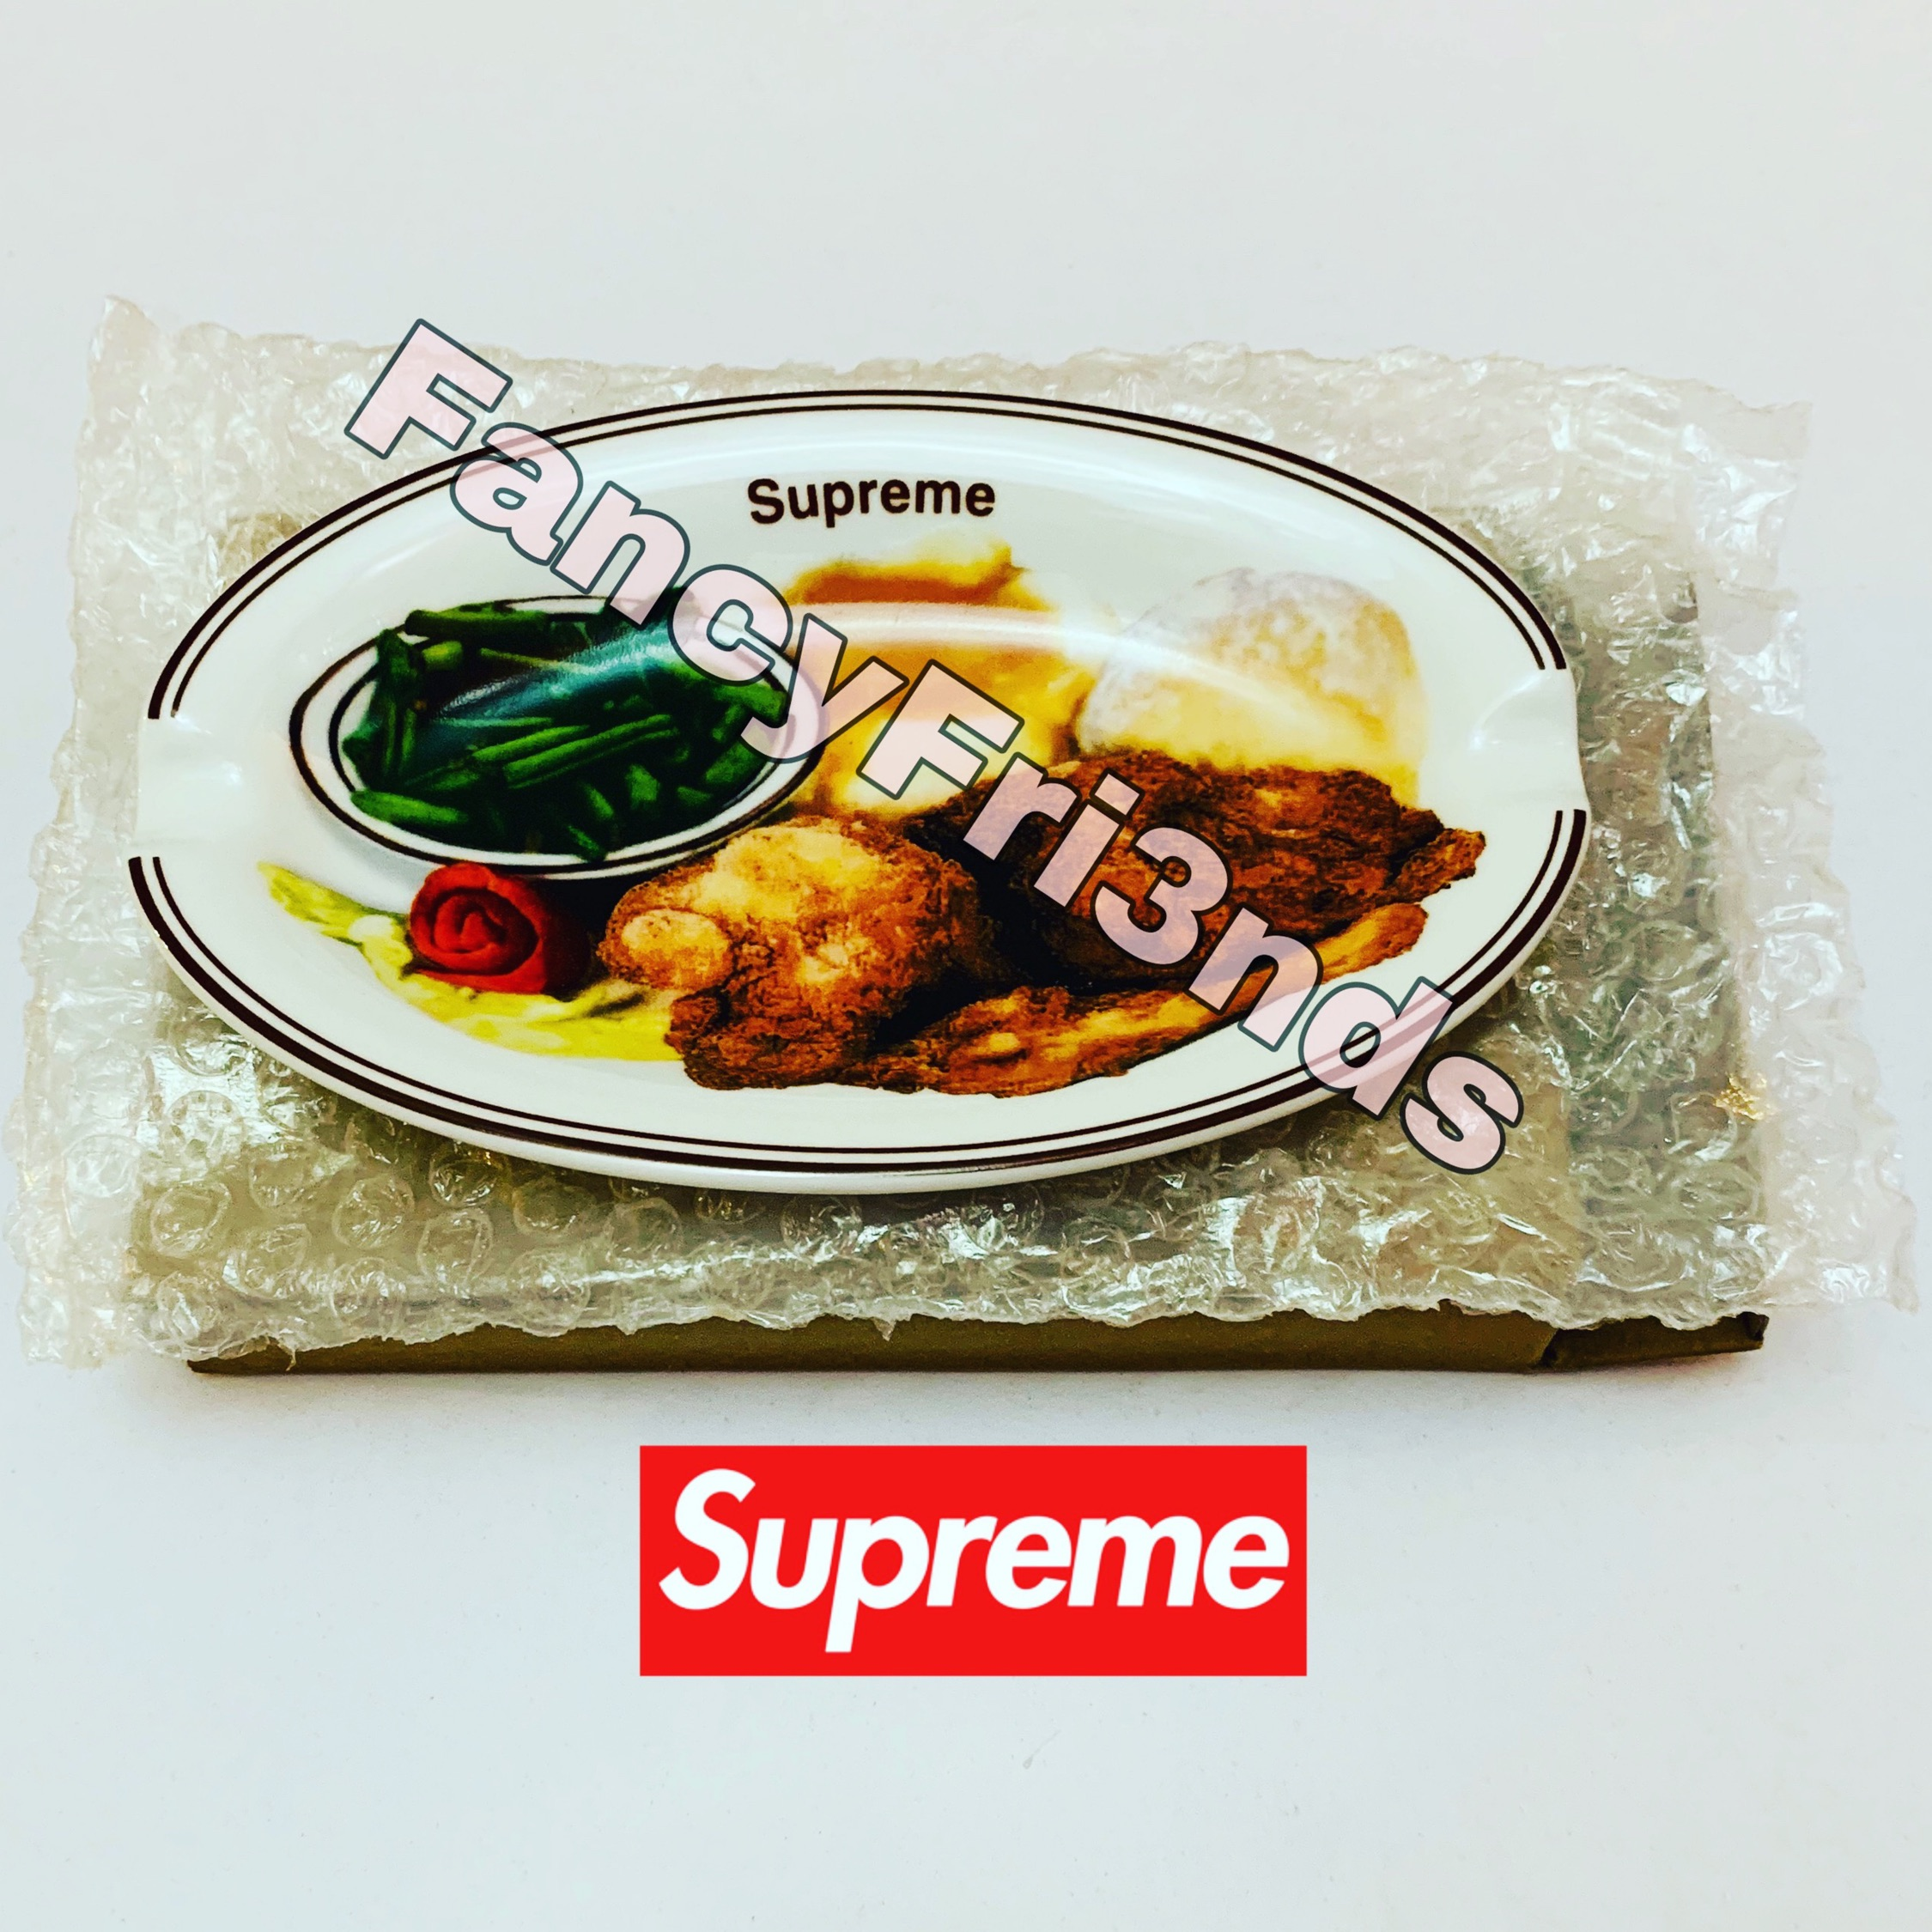 Supreme Chicken Dinner Plate Ashtrays